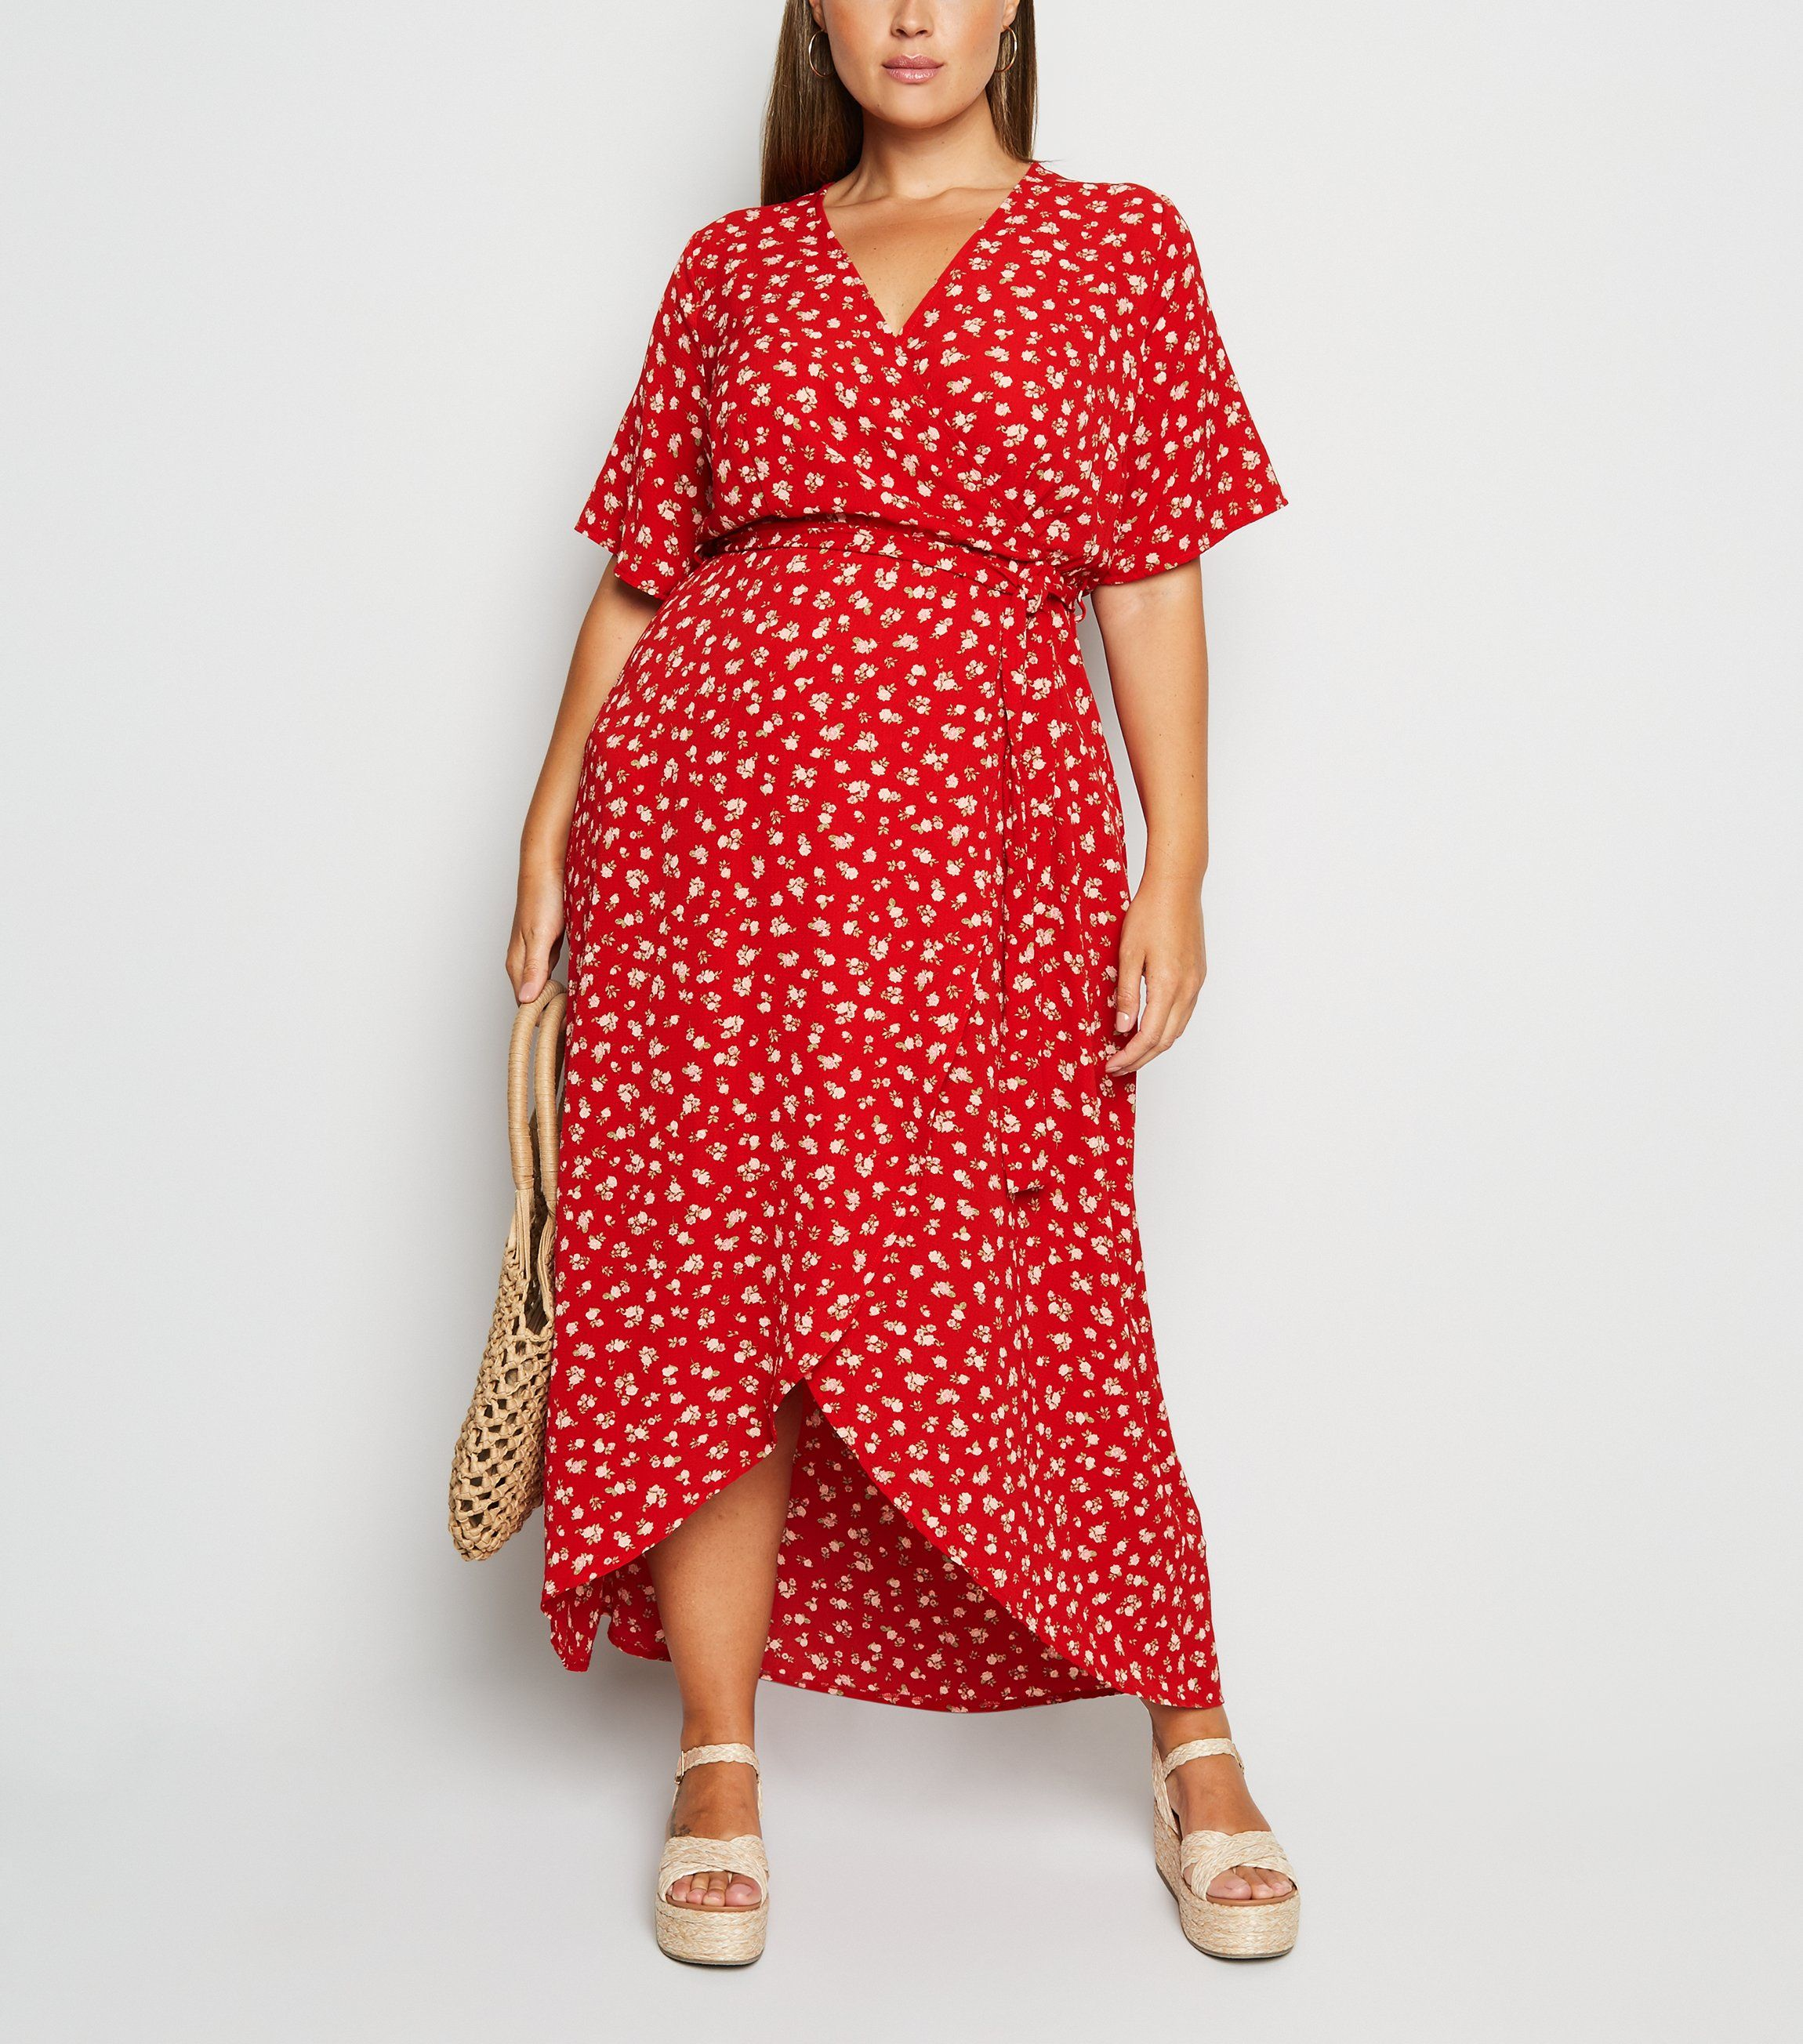 new look curves red floral dress